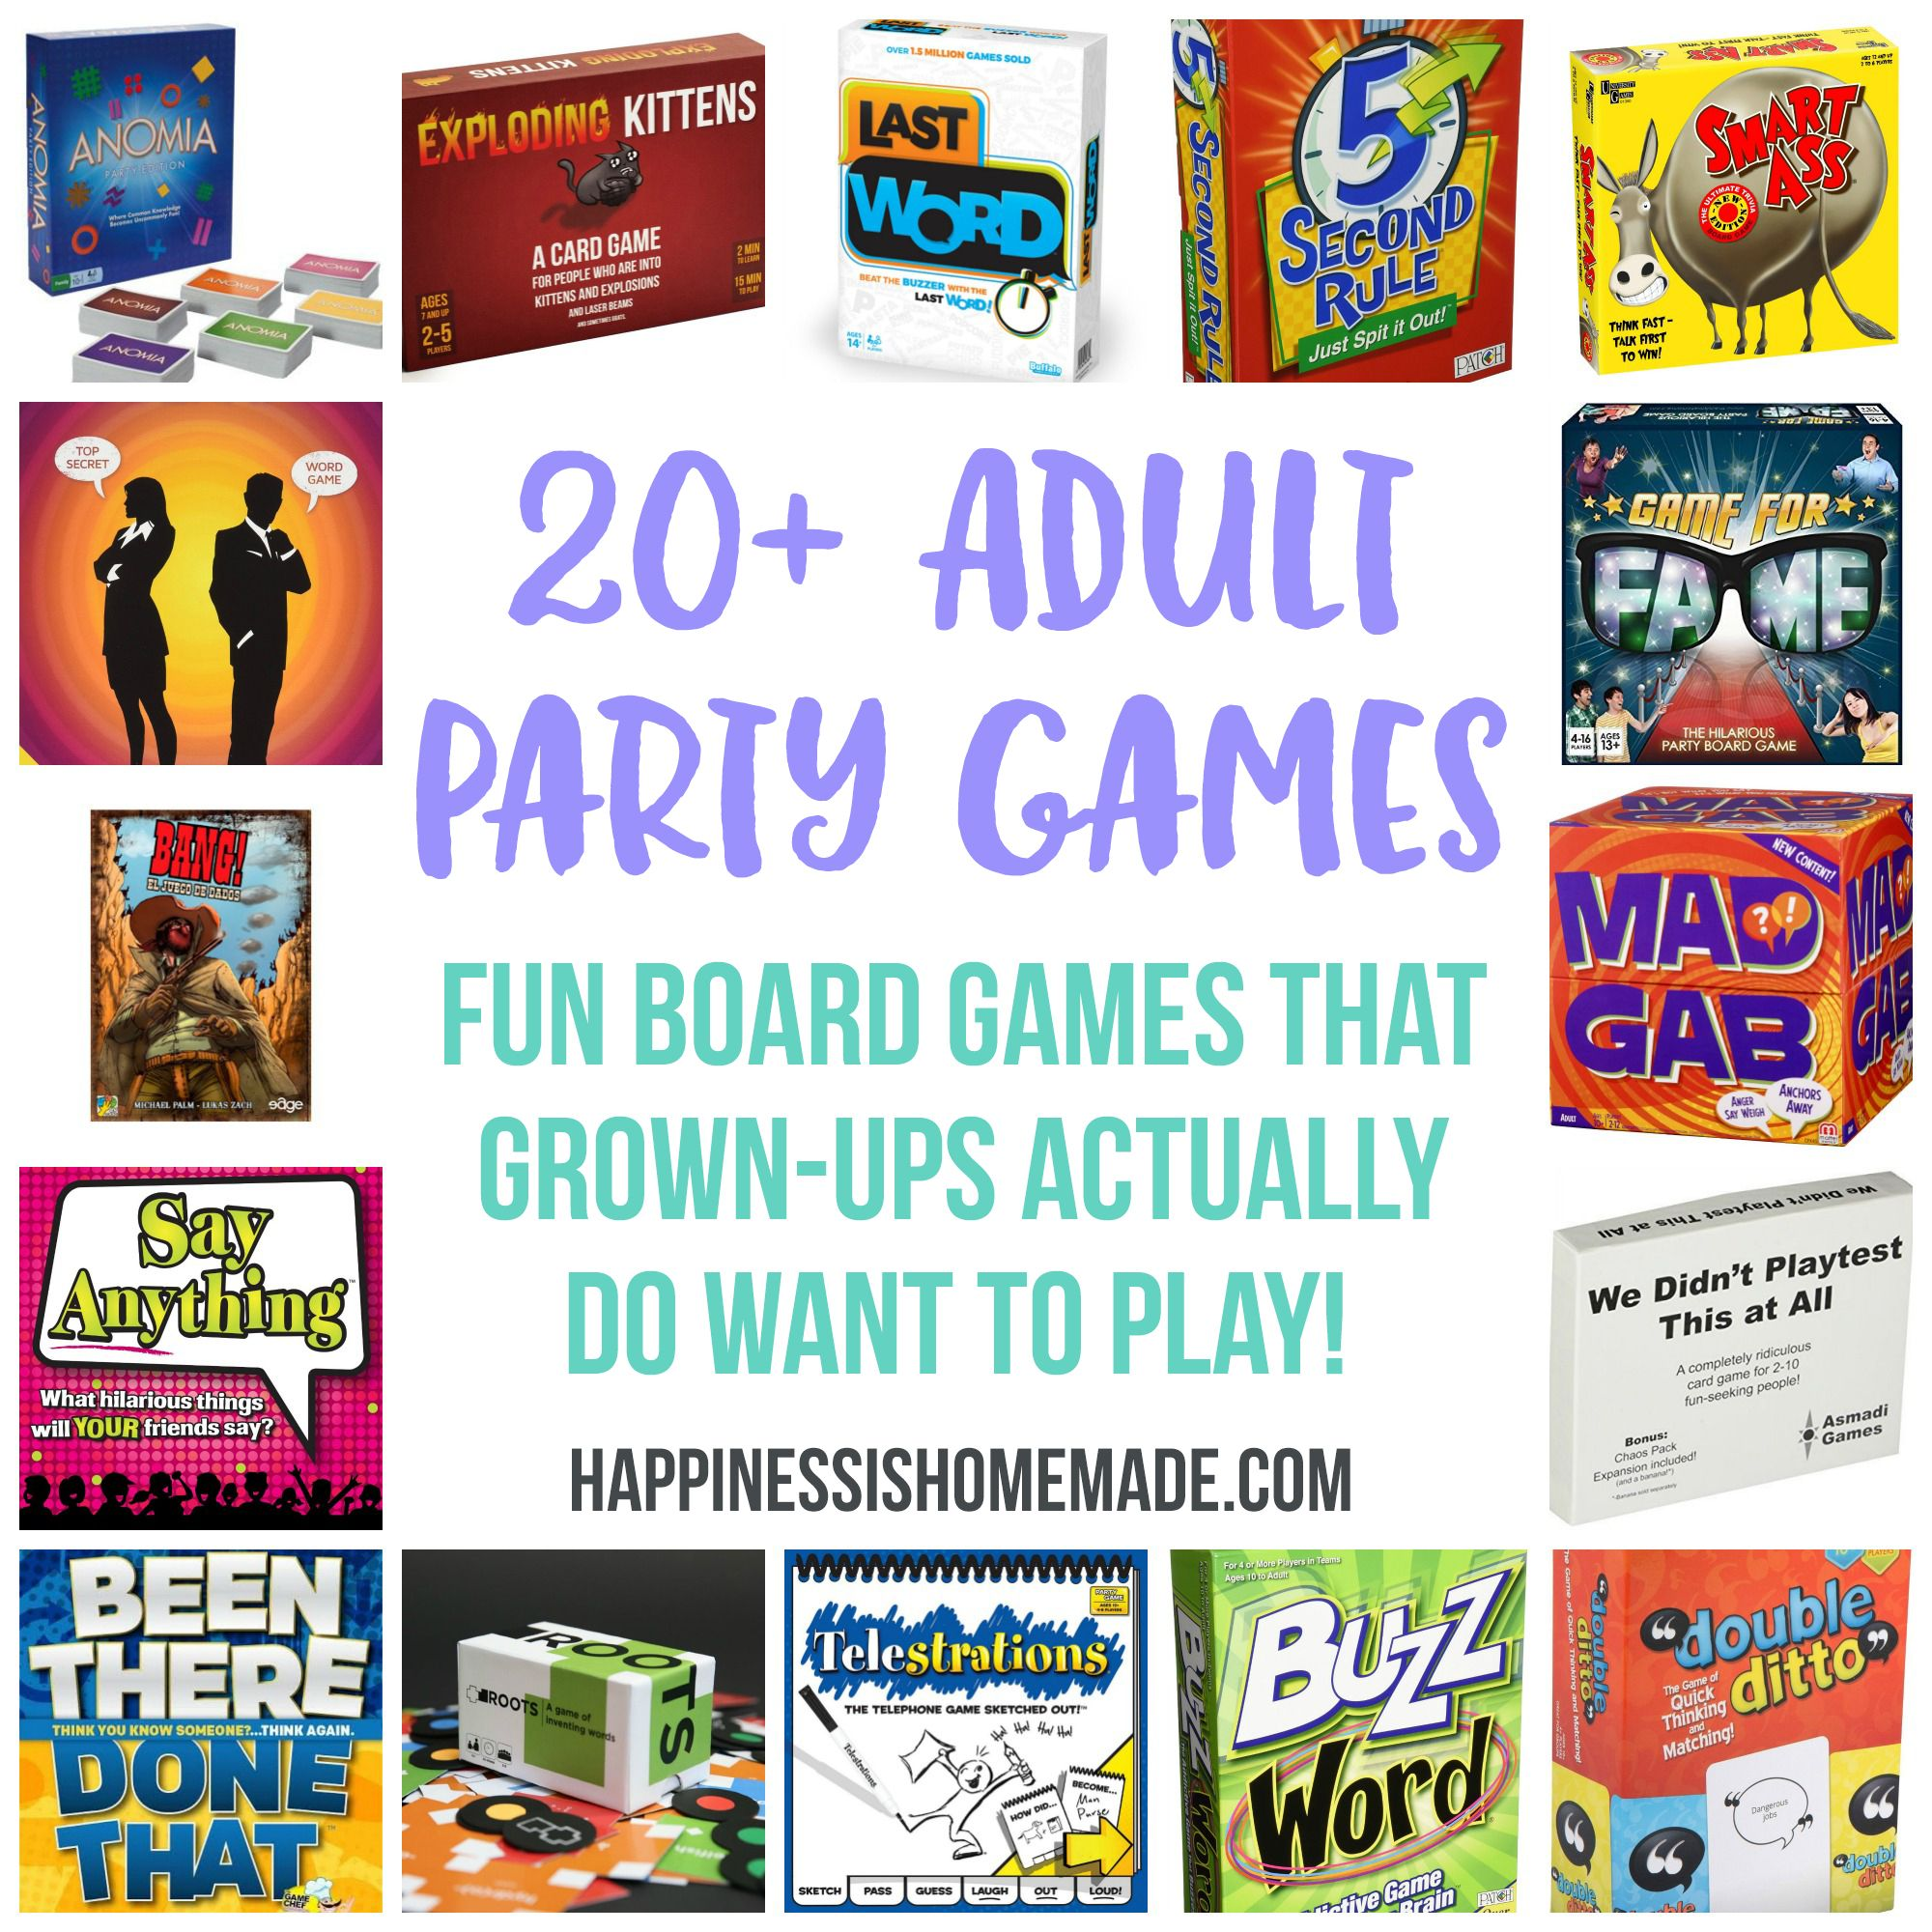 These 20+ board games are the most fun party games for adults! Grown-ups  will actually WANT to play these fun and hysterical adult board games!